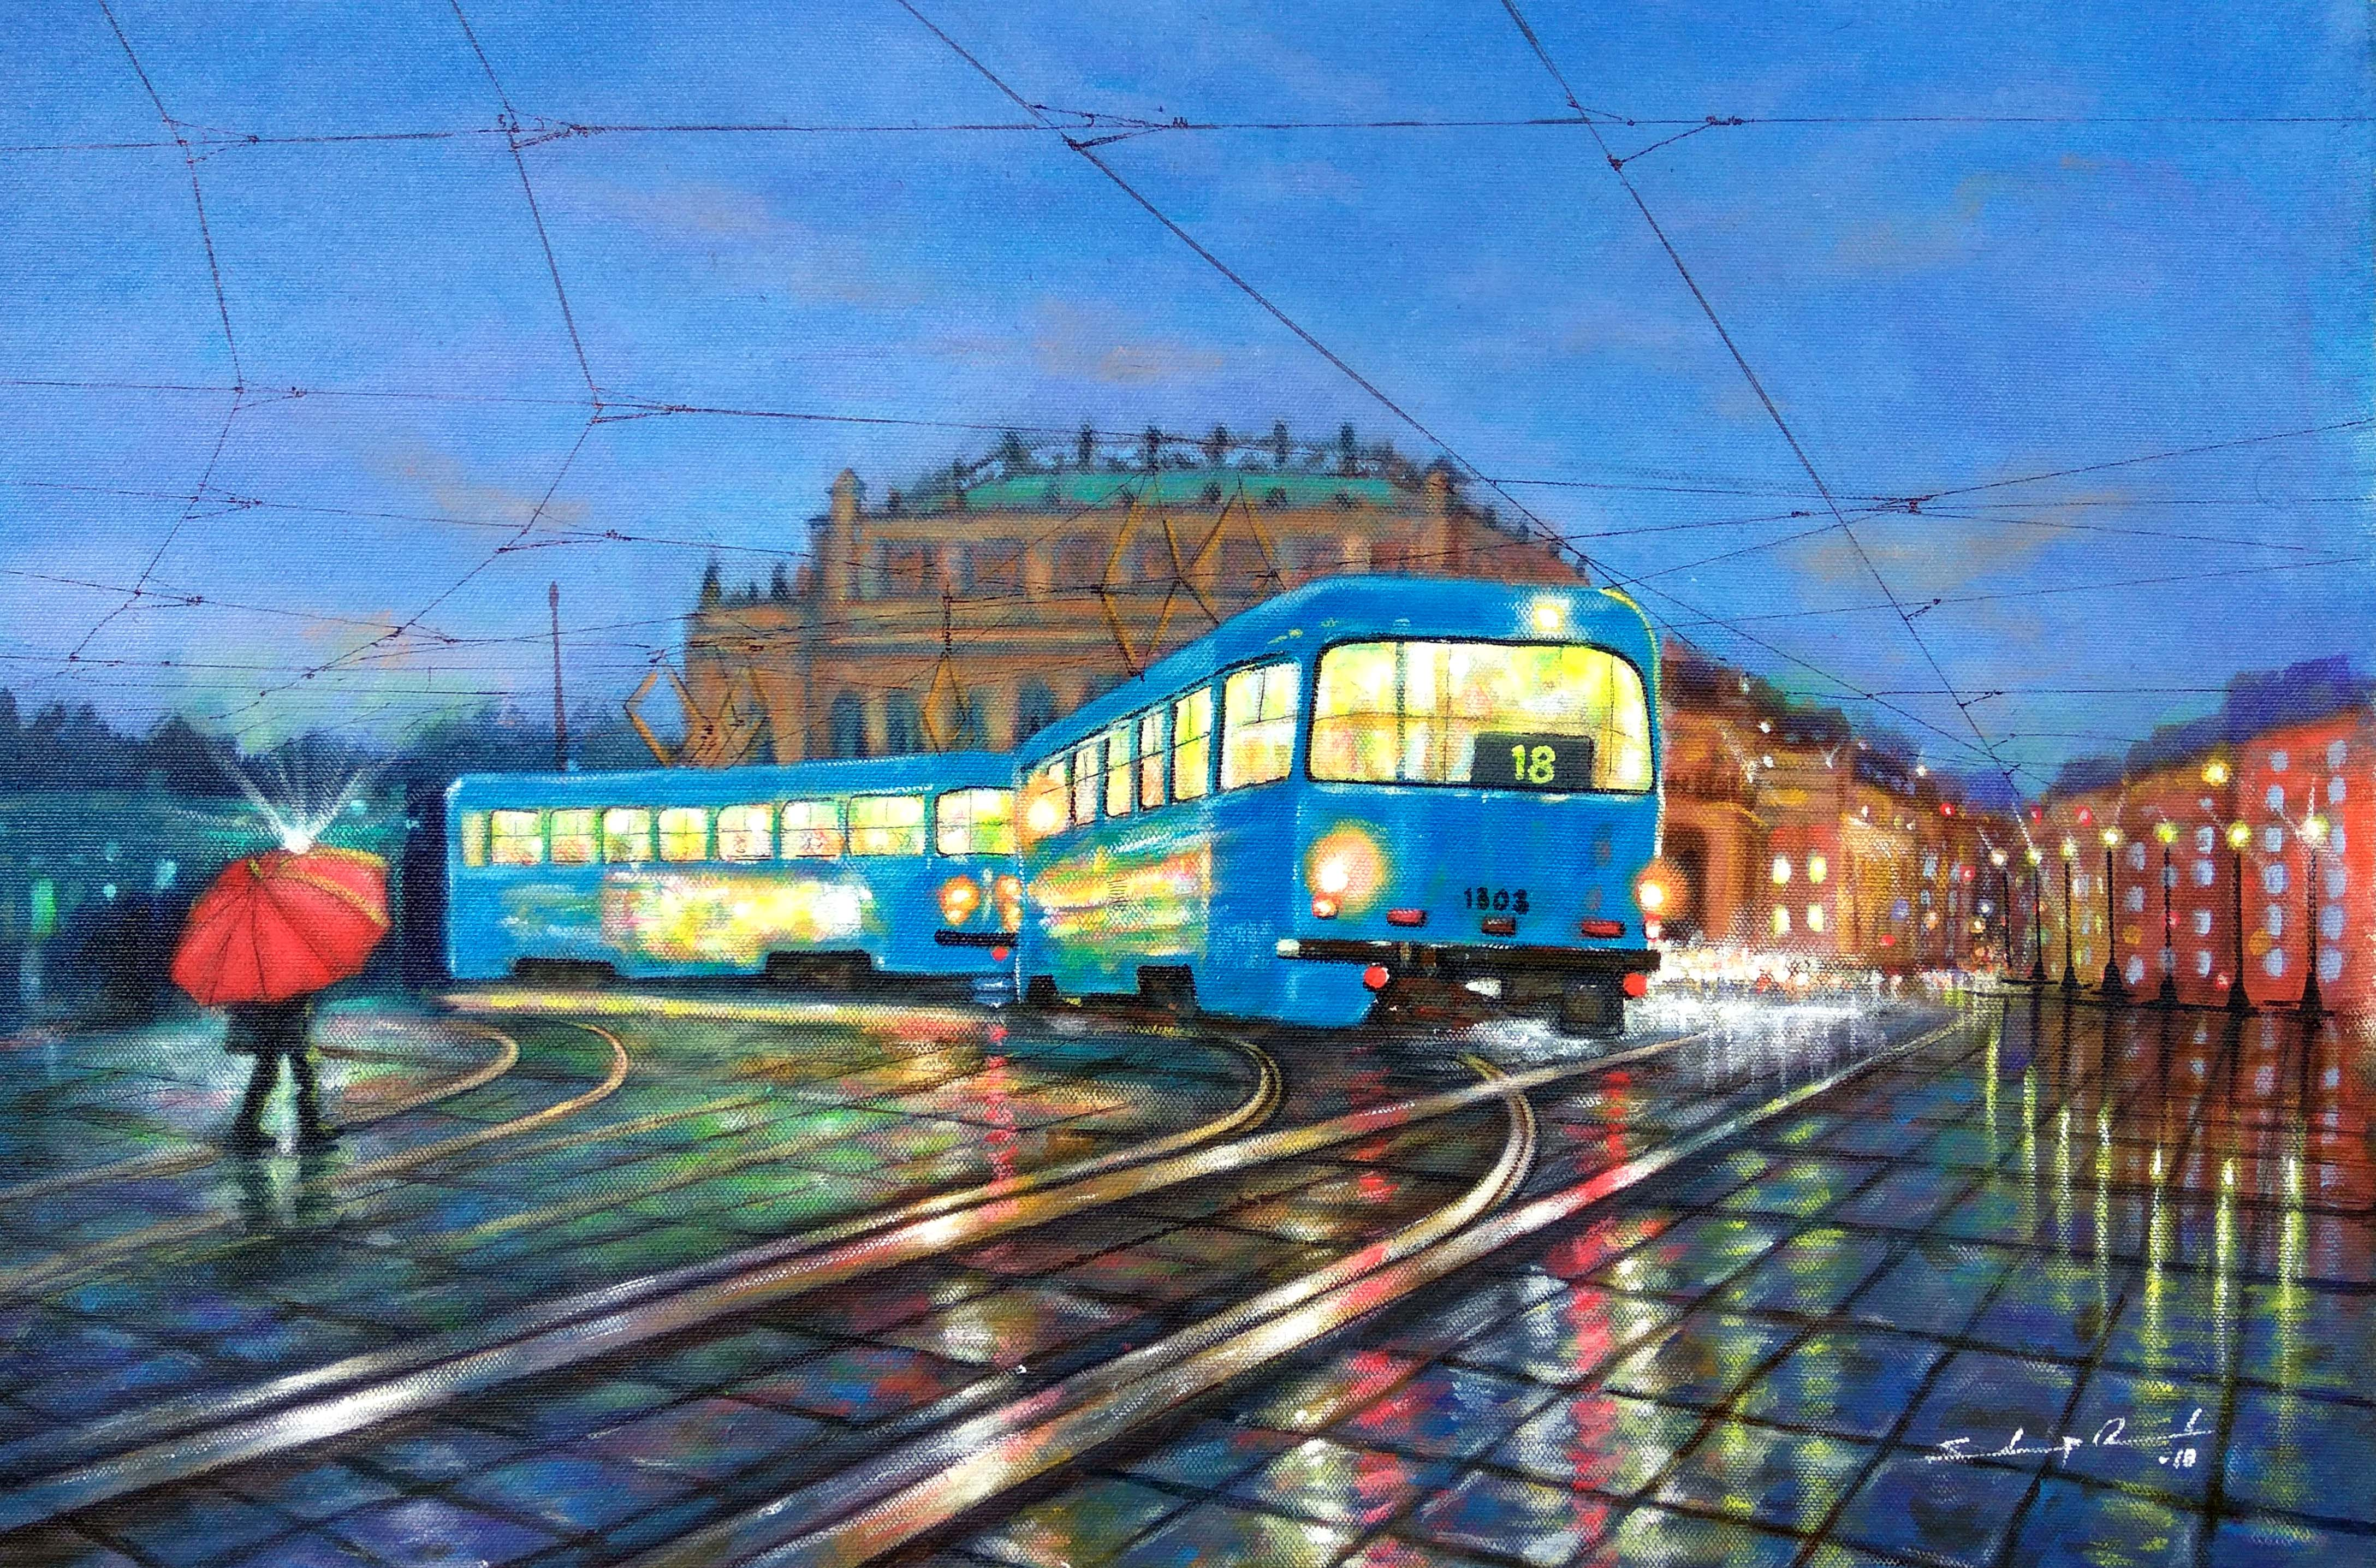 Blue tram in city of joy 13946